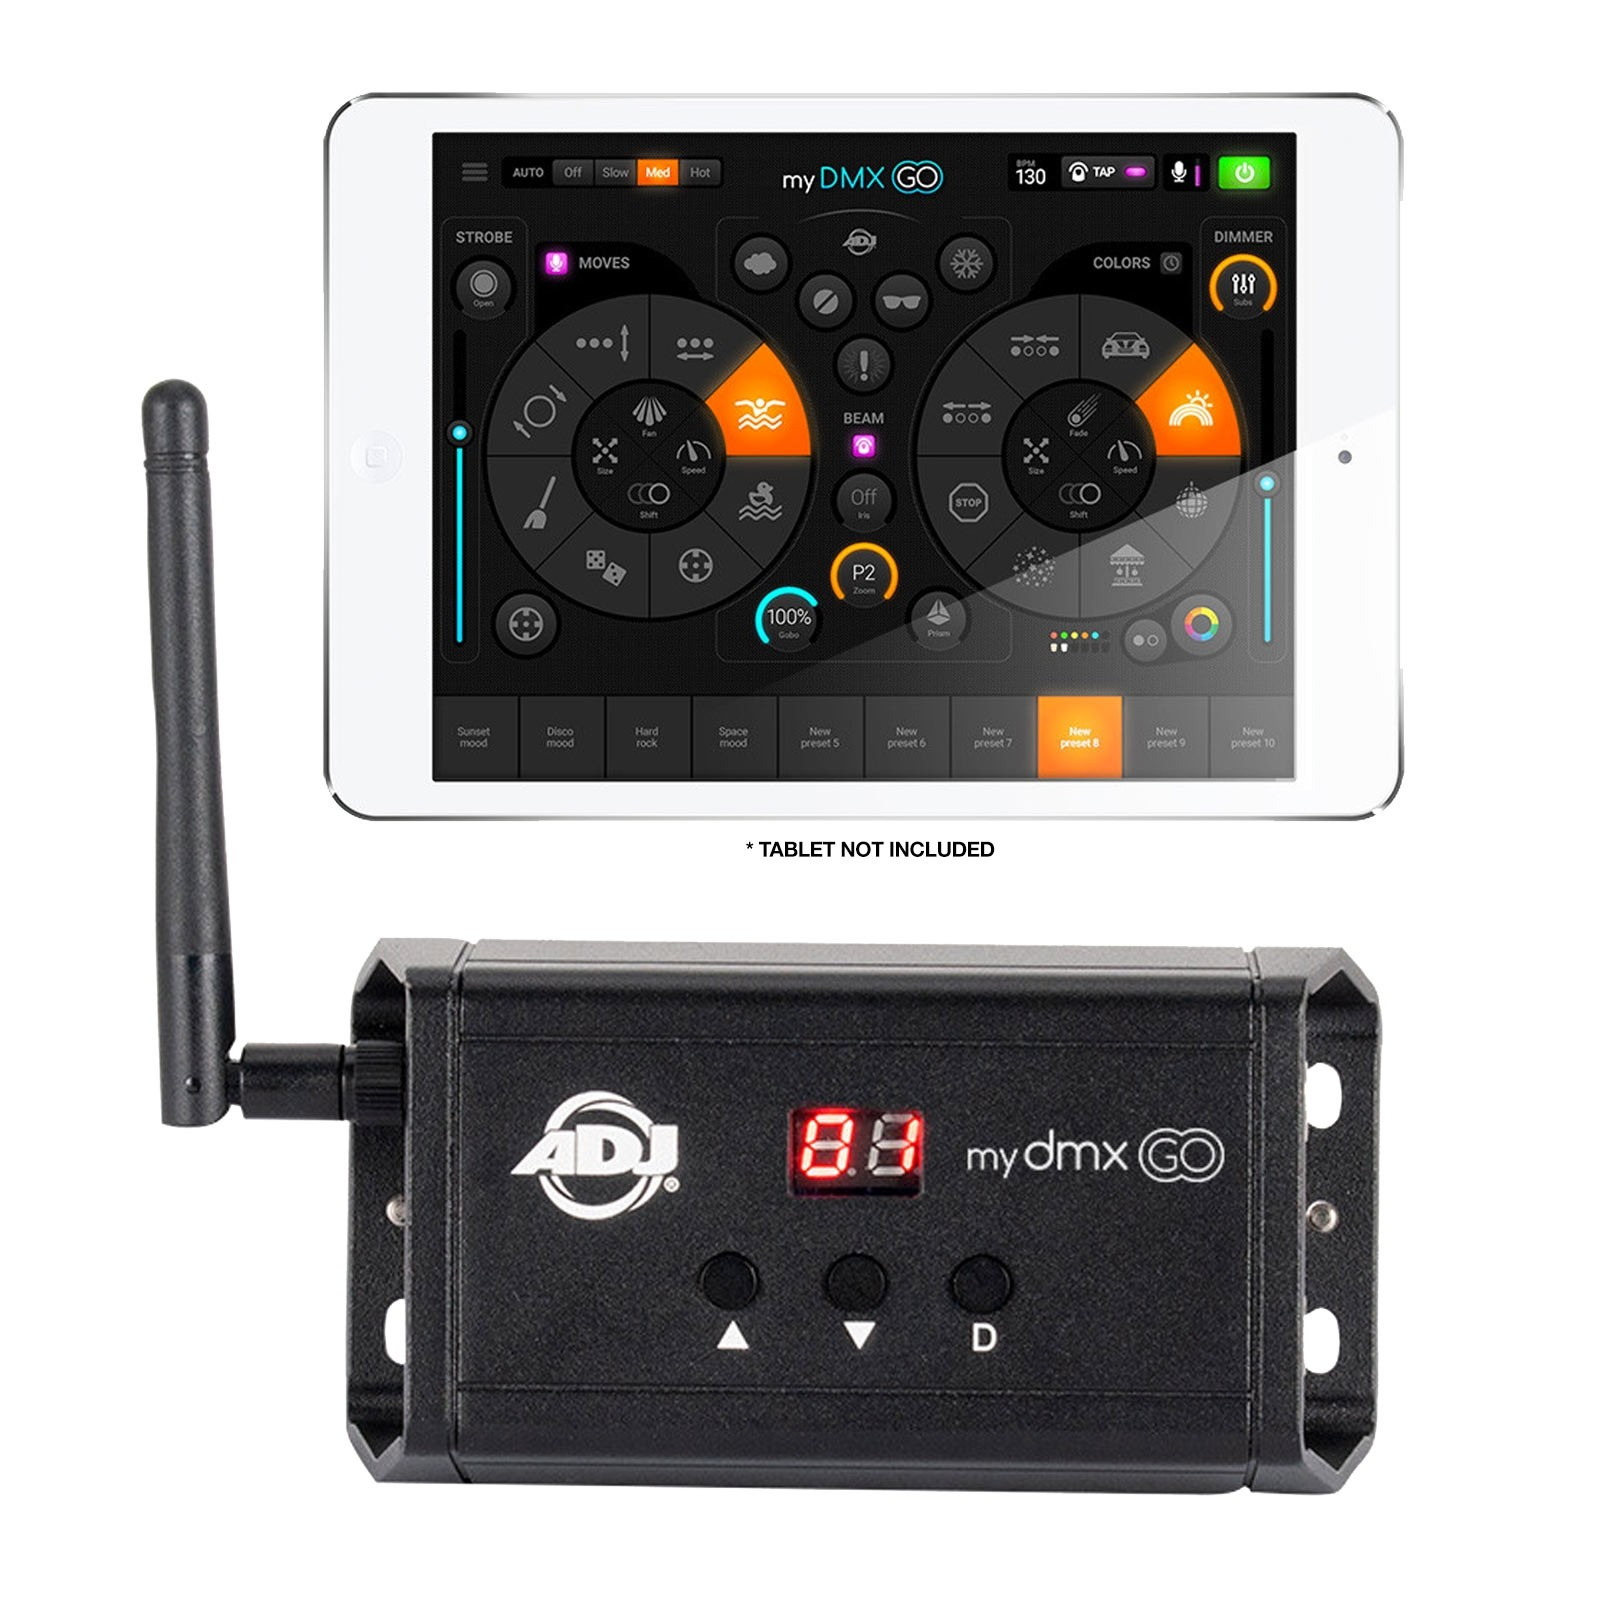 Adj Mydmx Go Wireless Lighting Control App For Ipad Amp Tablet